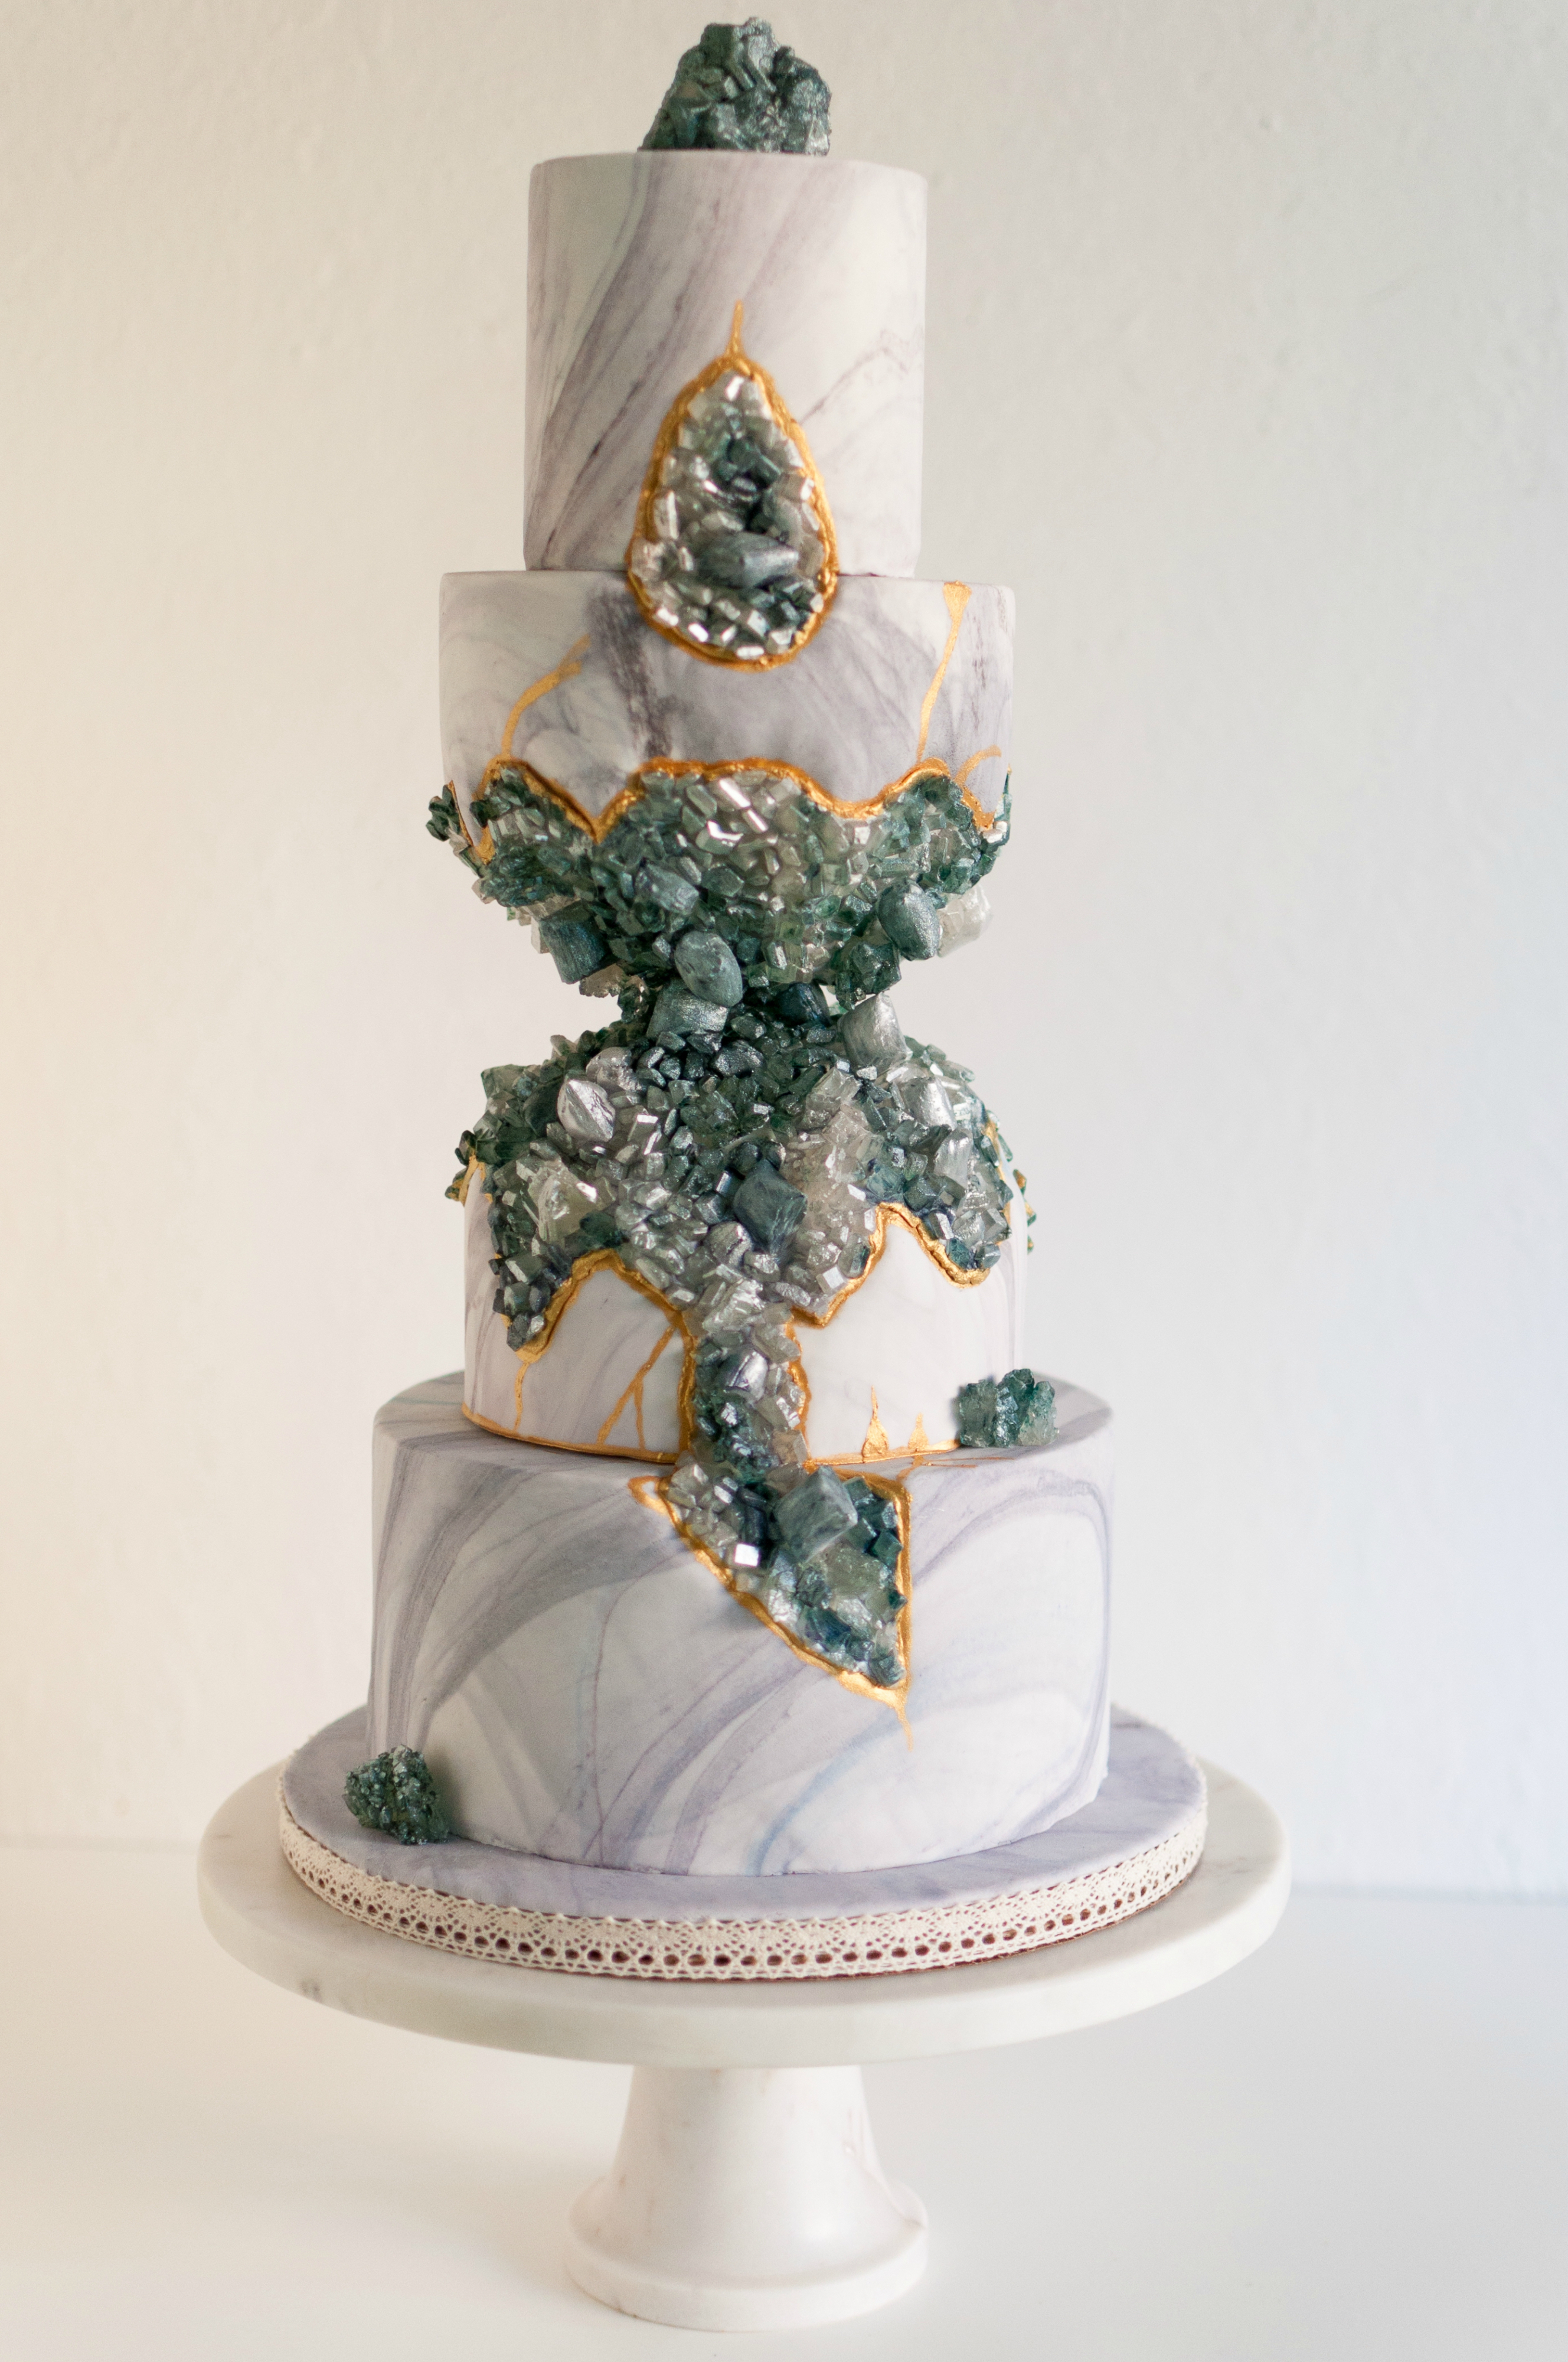 Gray fondant cake with Emerald geode